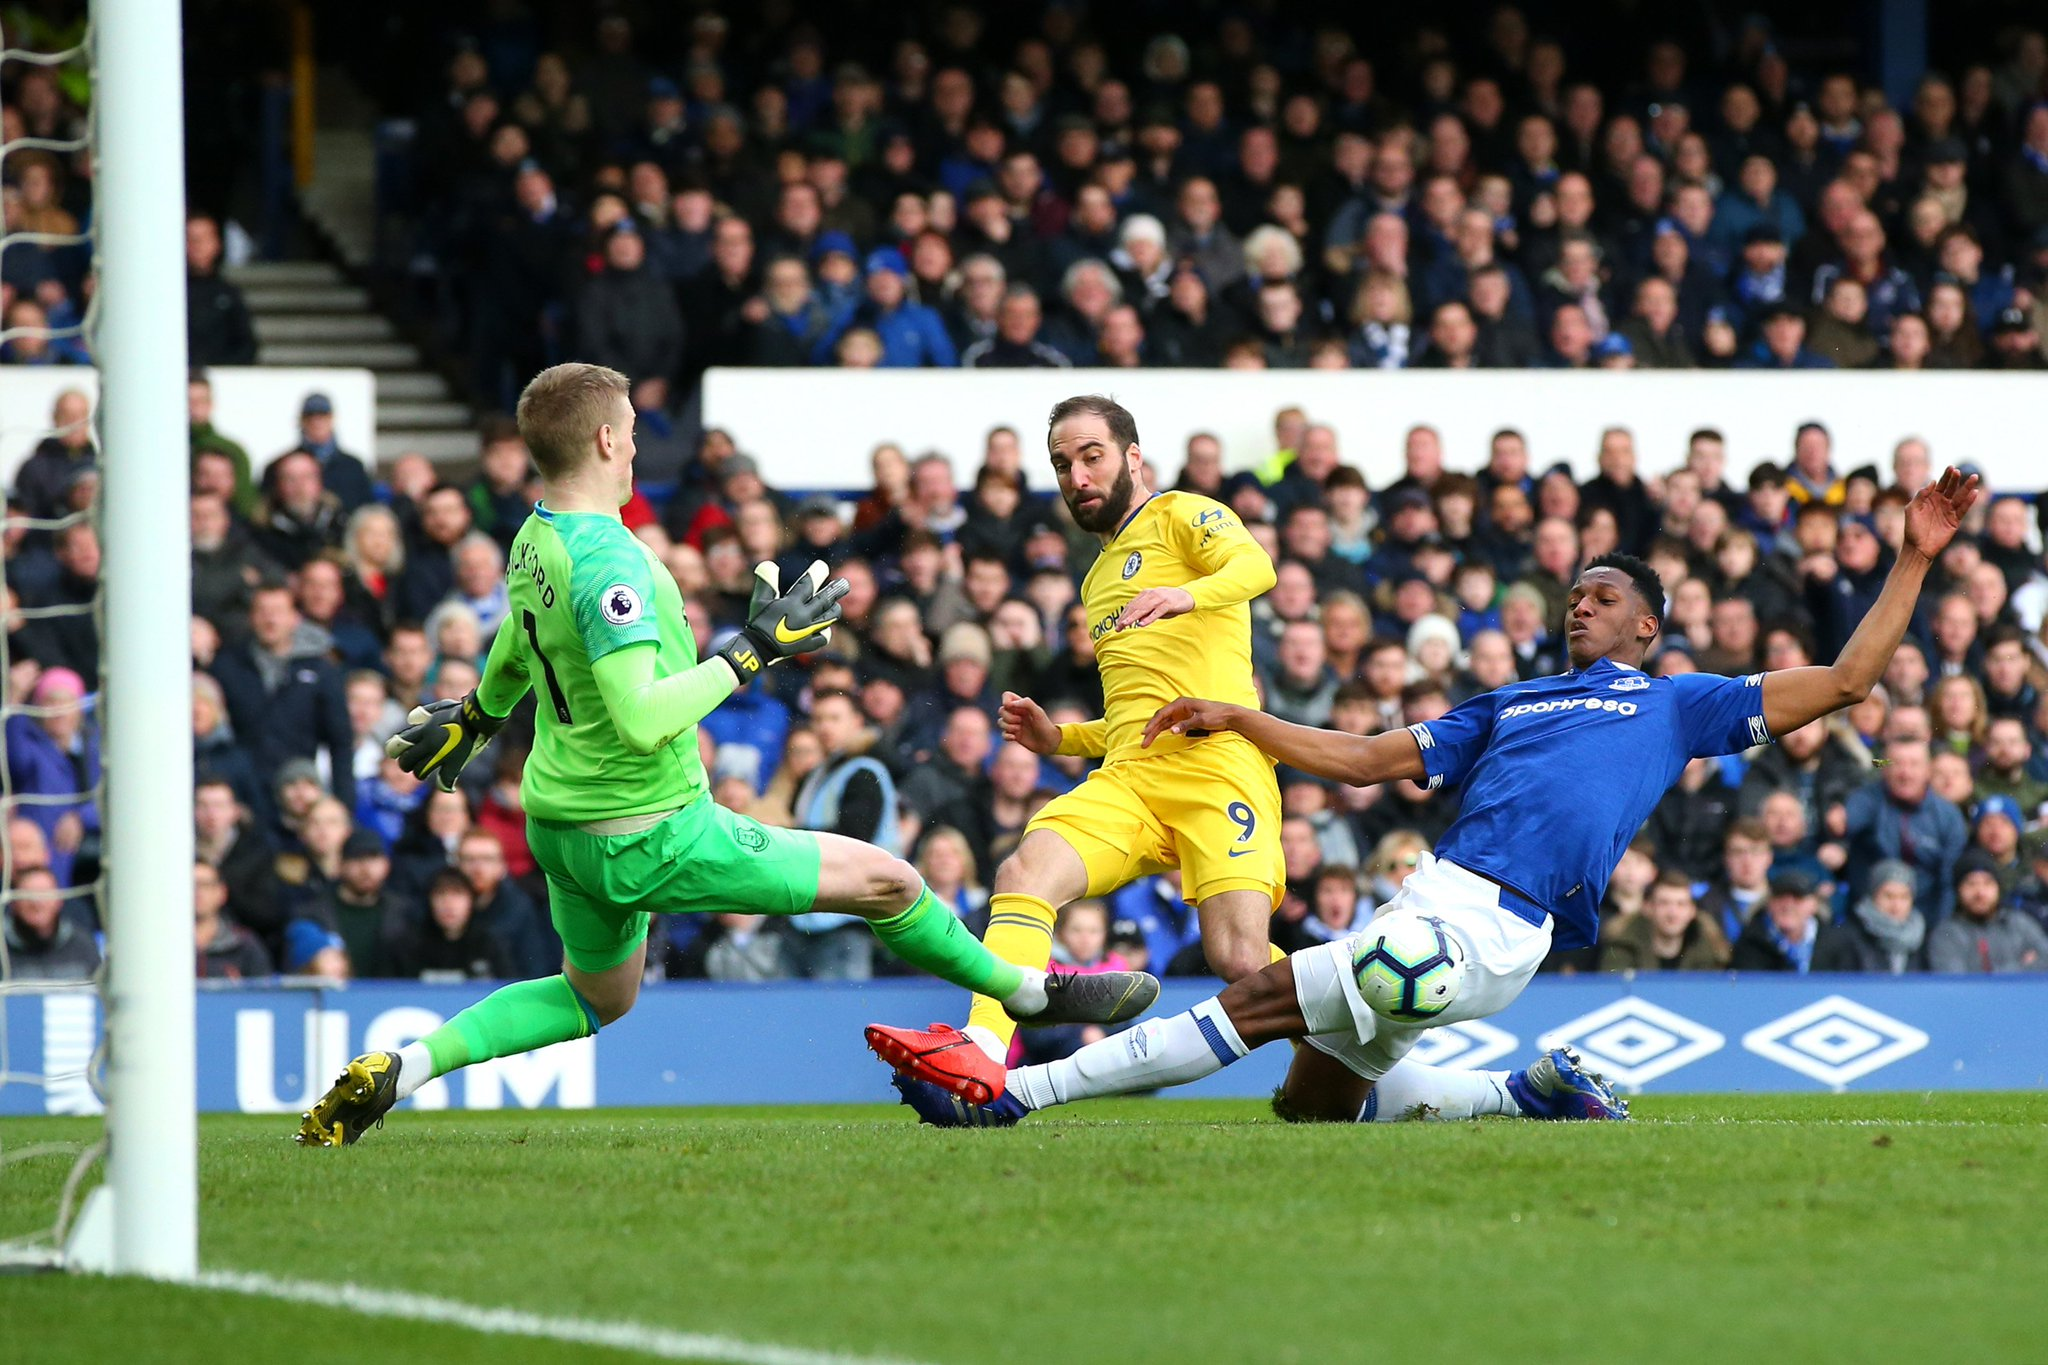 Everton vs Chelsea Highlights Video